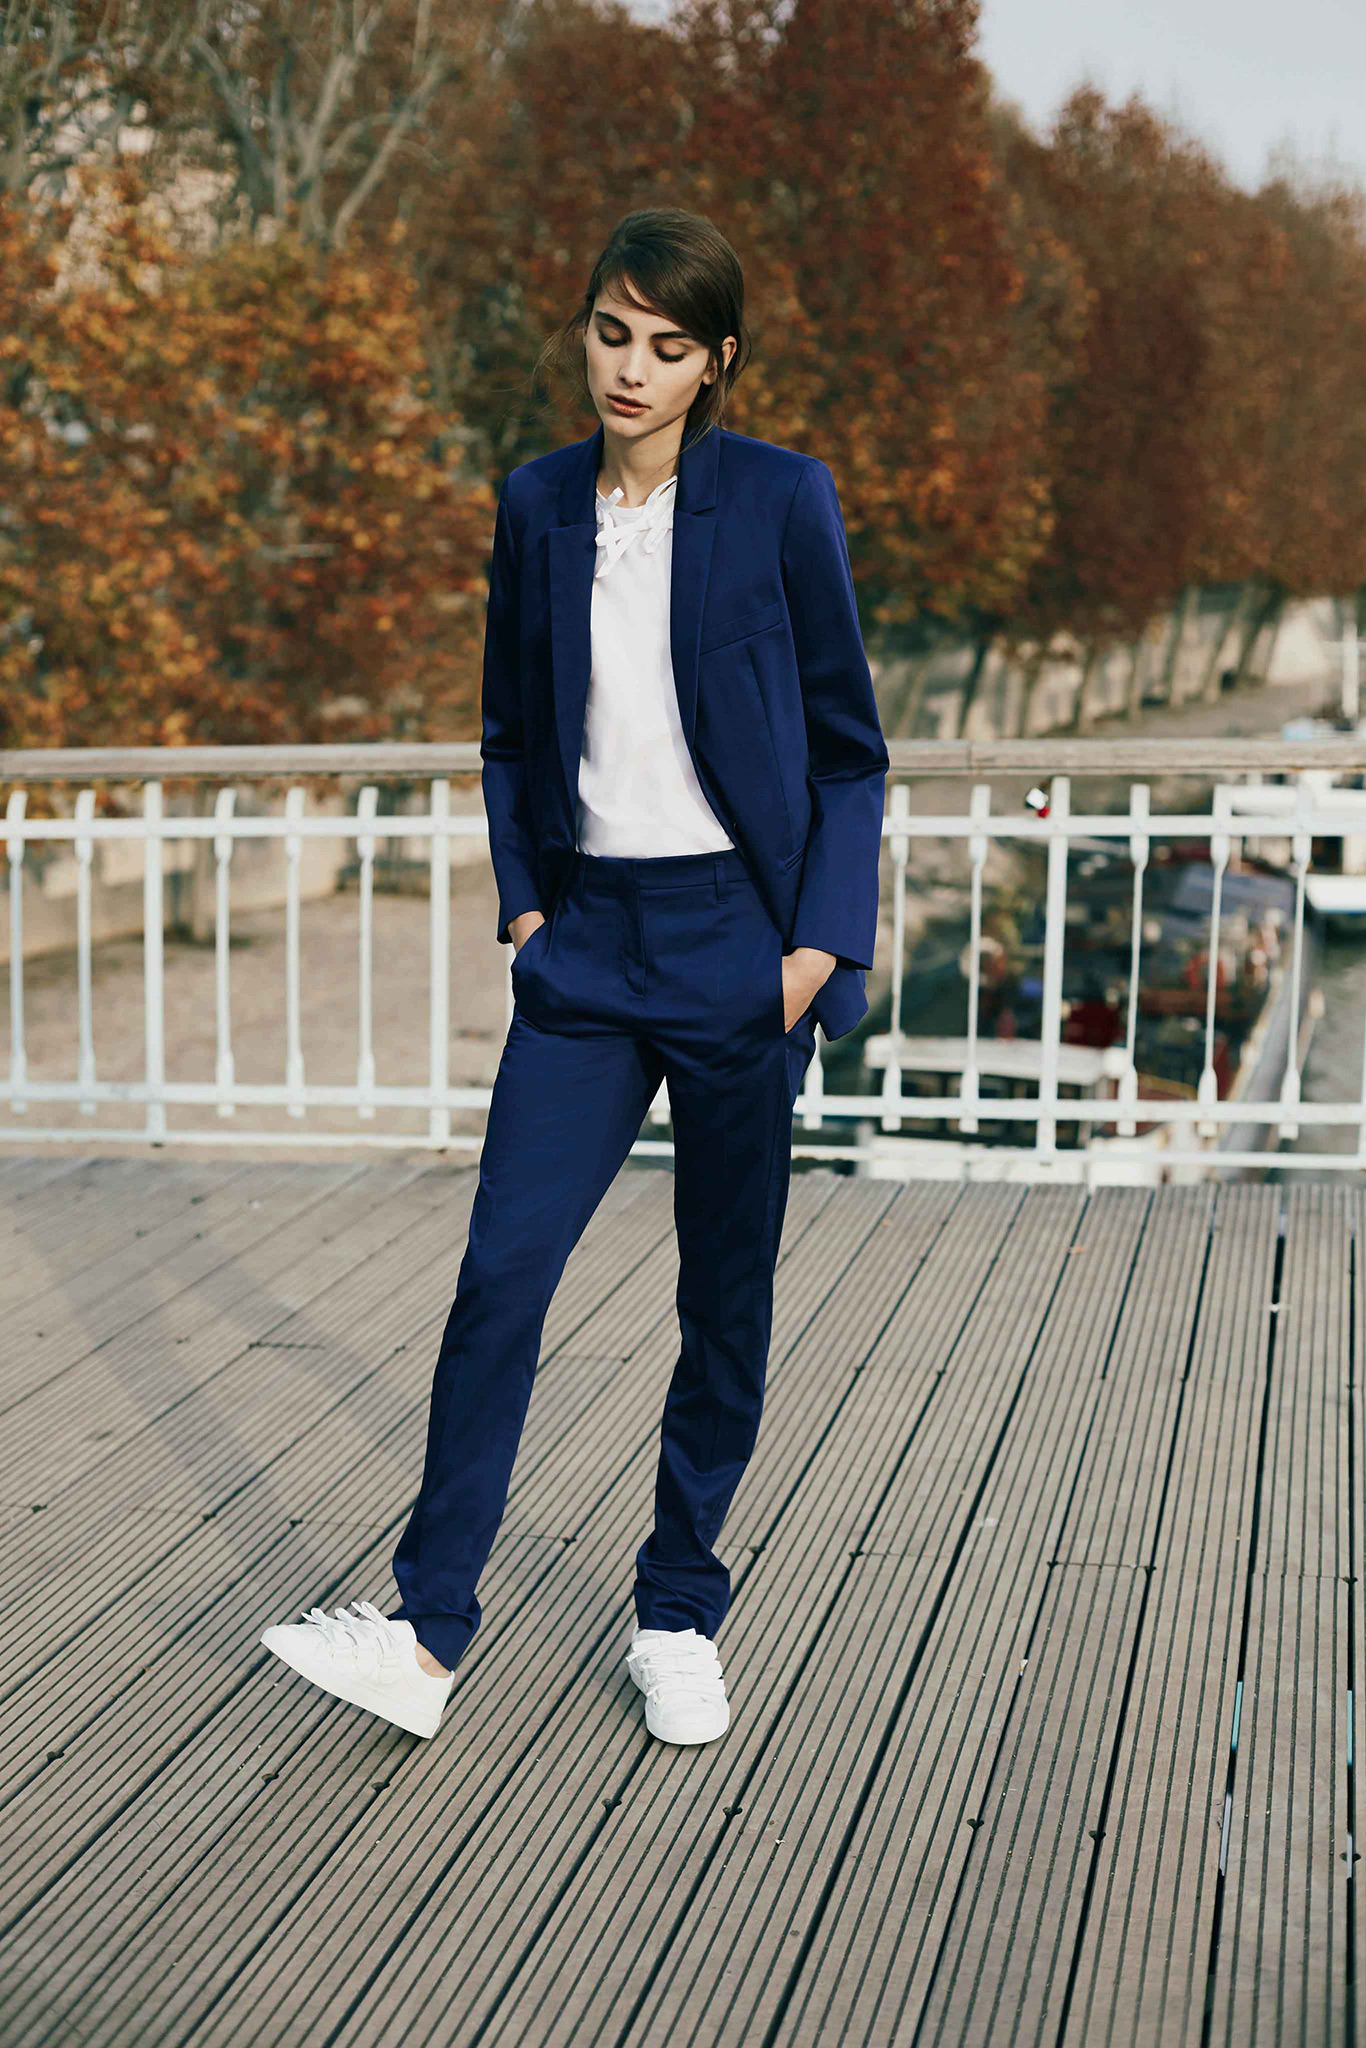 Casual-Street-Style-Appropriate-Pantsuits-2015-2016-13